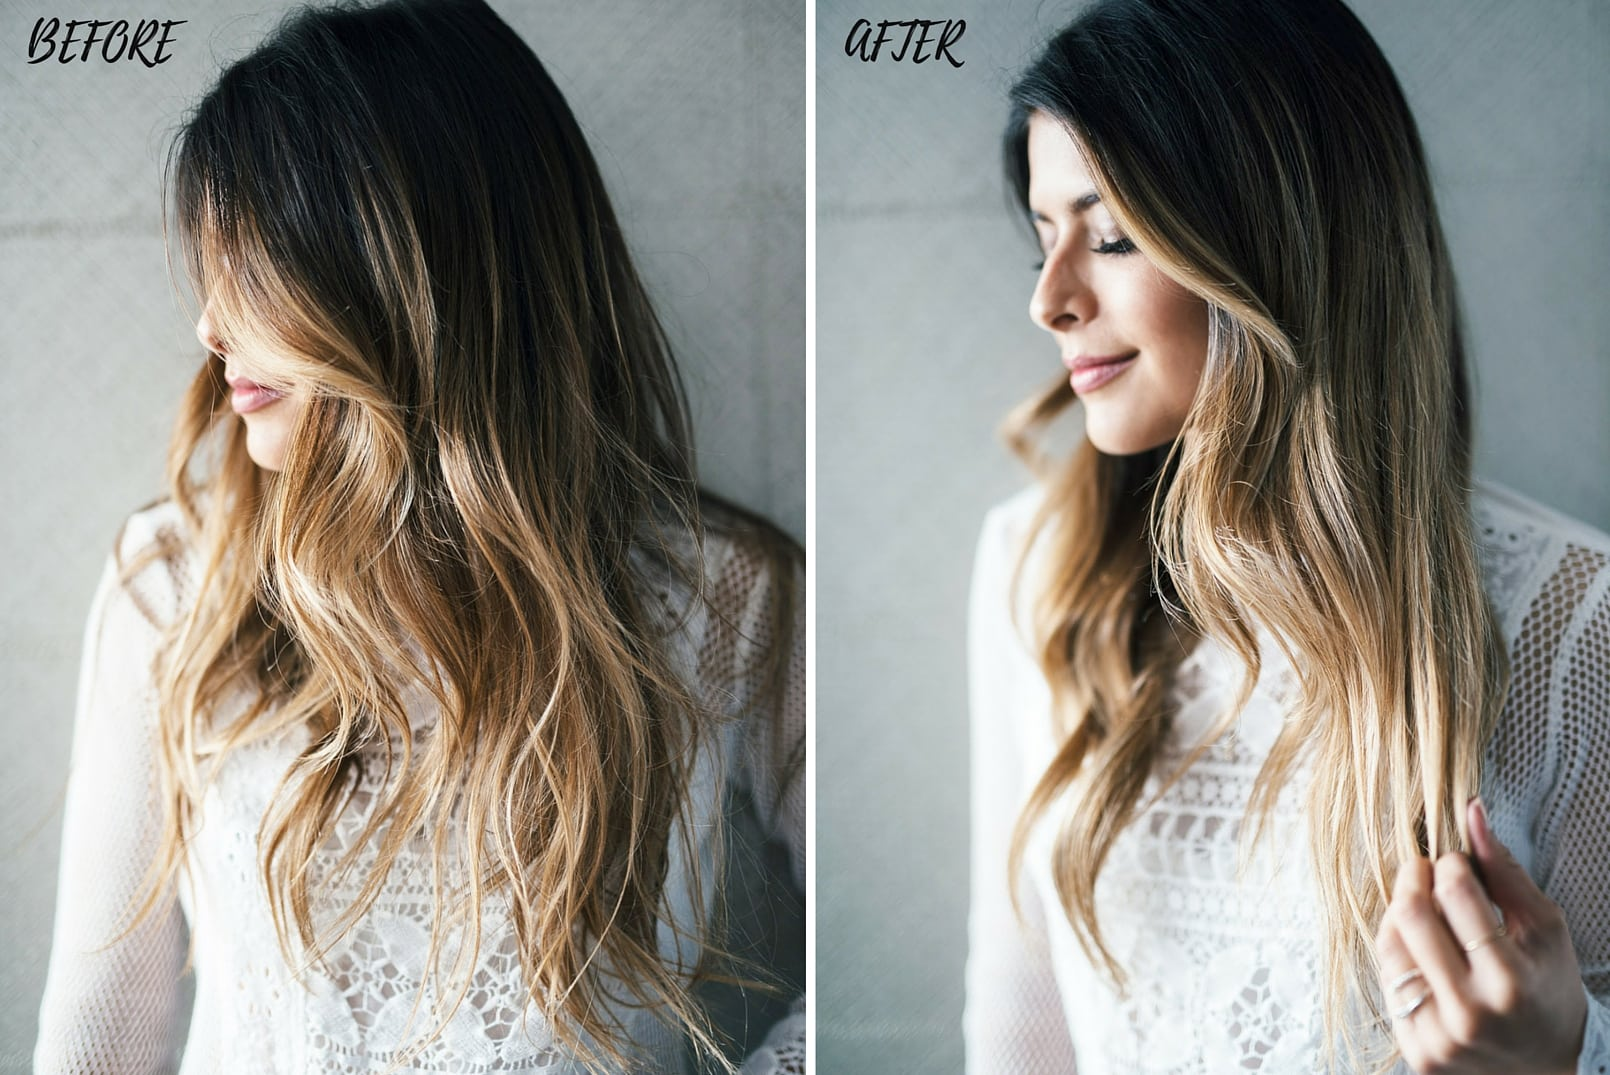 Beauty Fix How To Tame Frizzy Hair The Girl From Panama